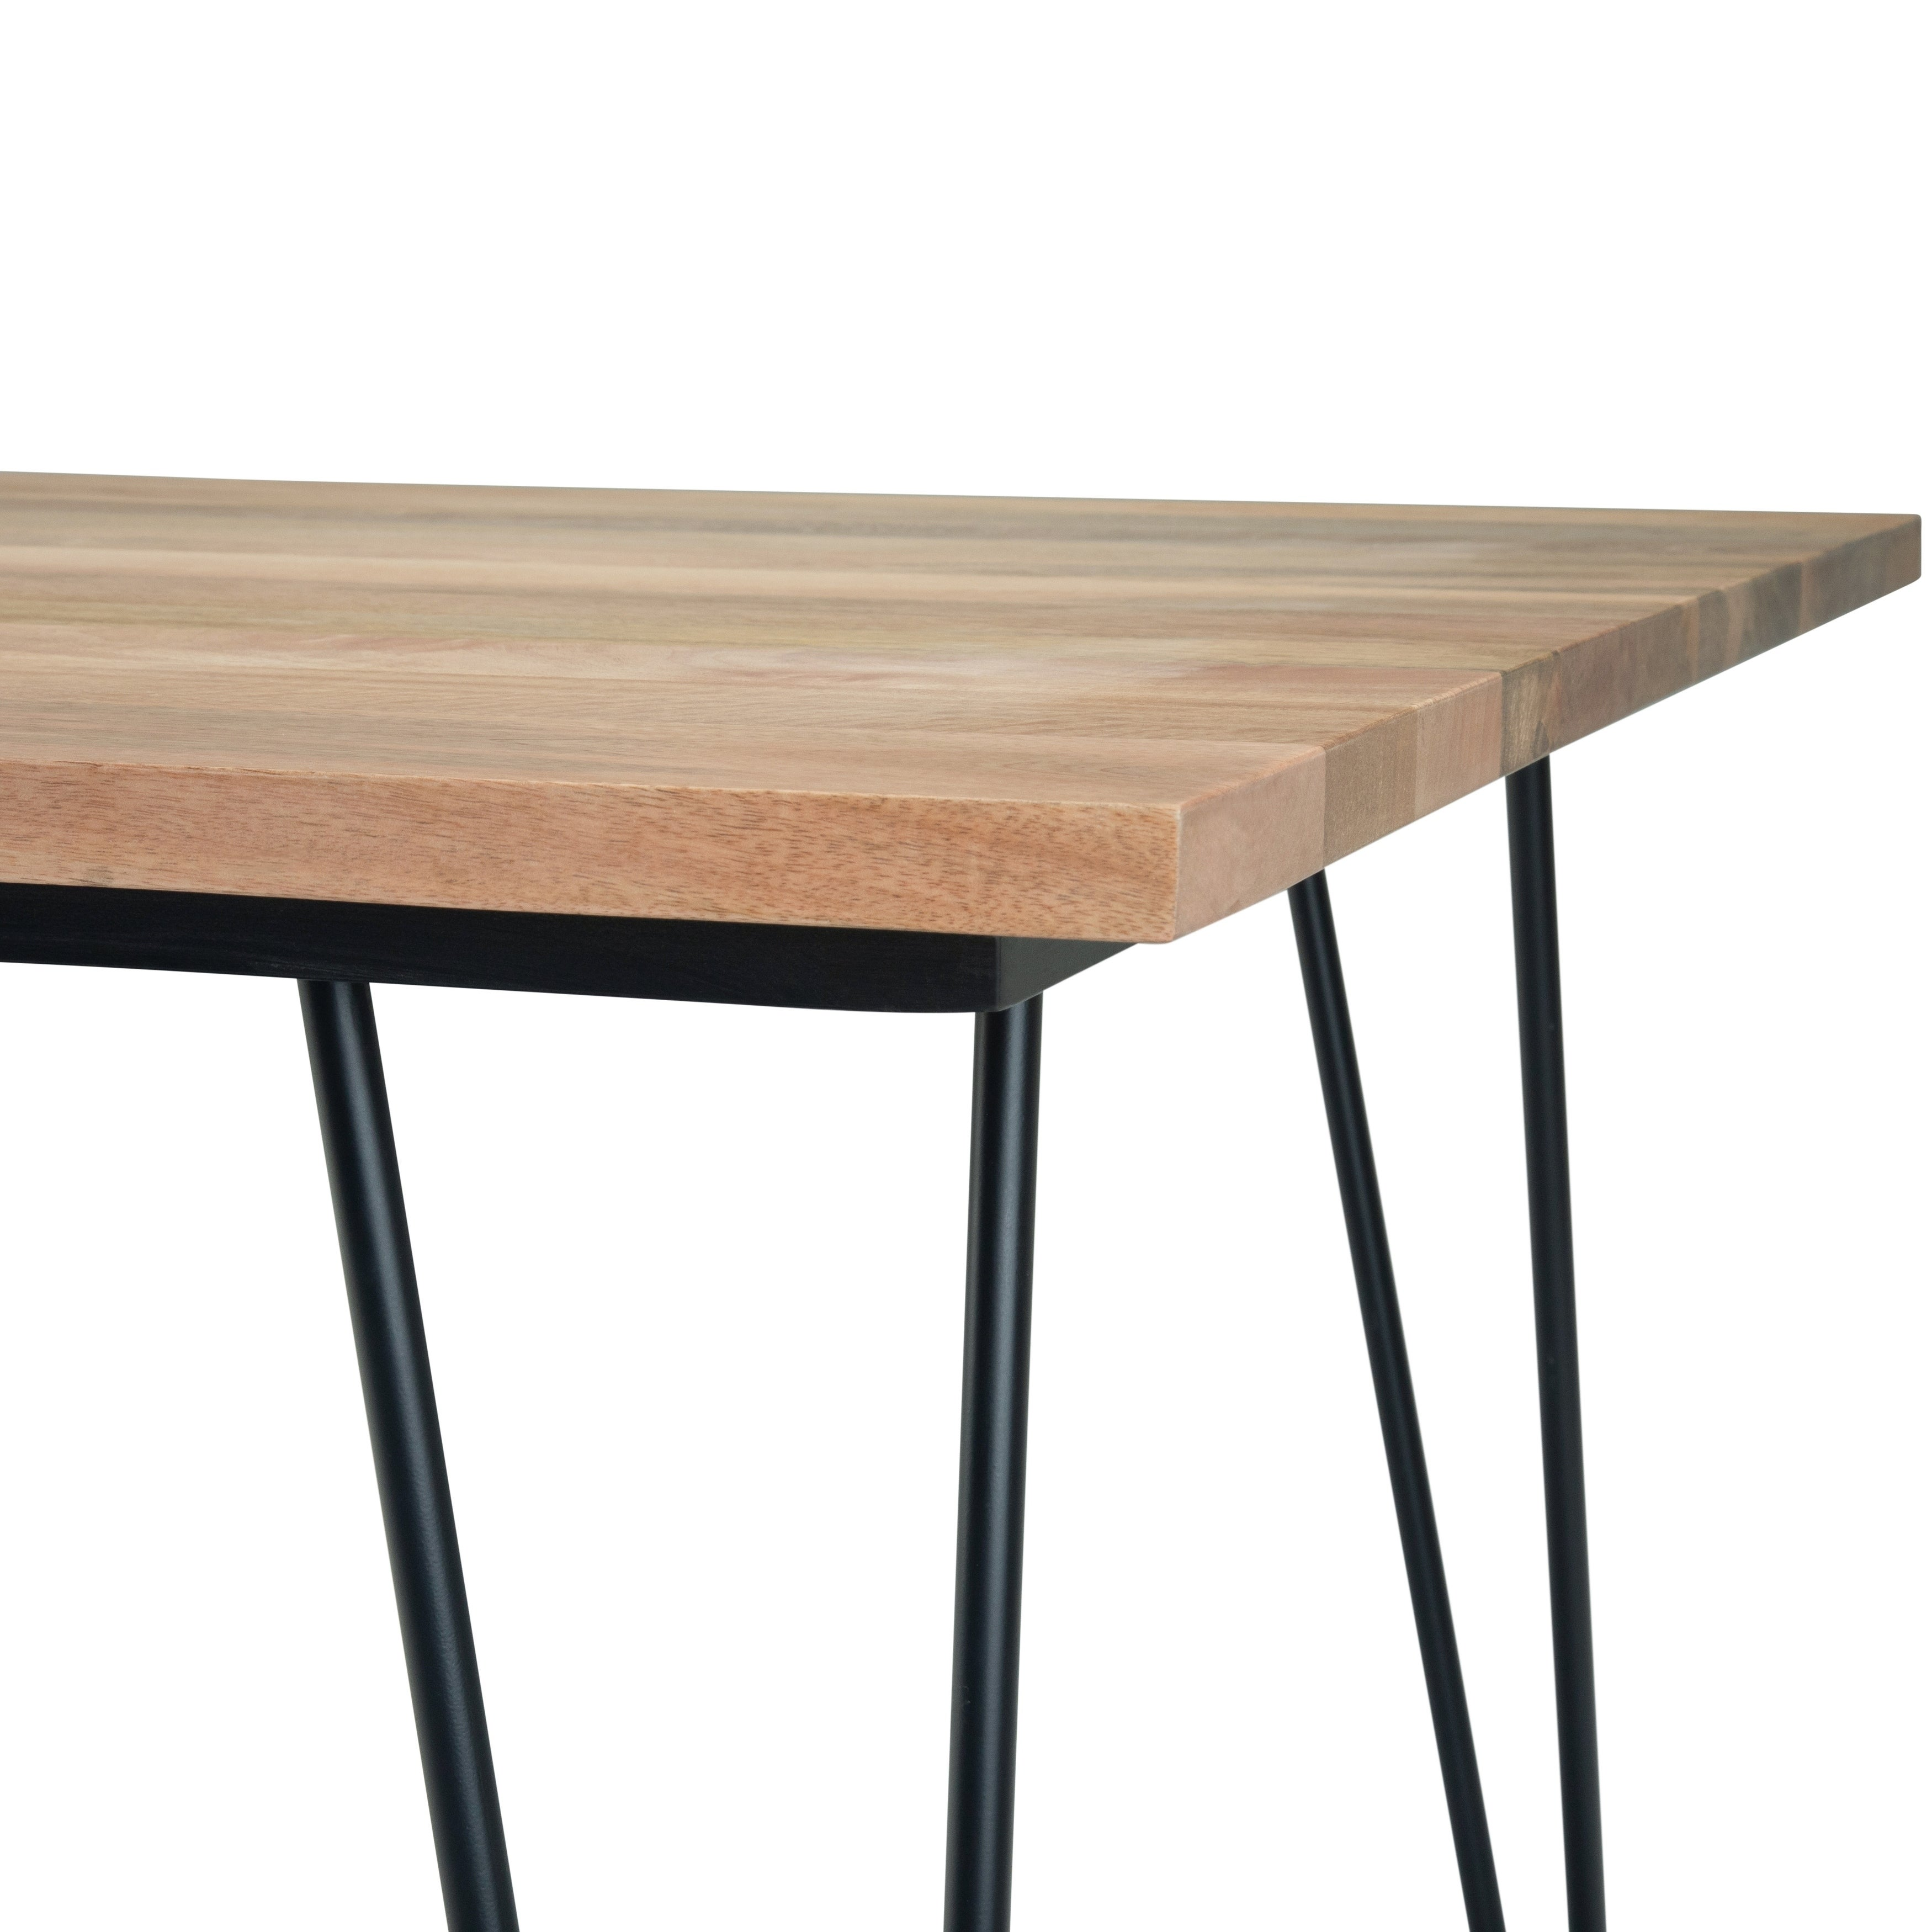 Wyndenhall Moreno Solid Mango Wood And Metal 66 Inch X 40 Inch Rectangle Industrial Contemporary Dining Table In Natural Overstock 28866437